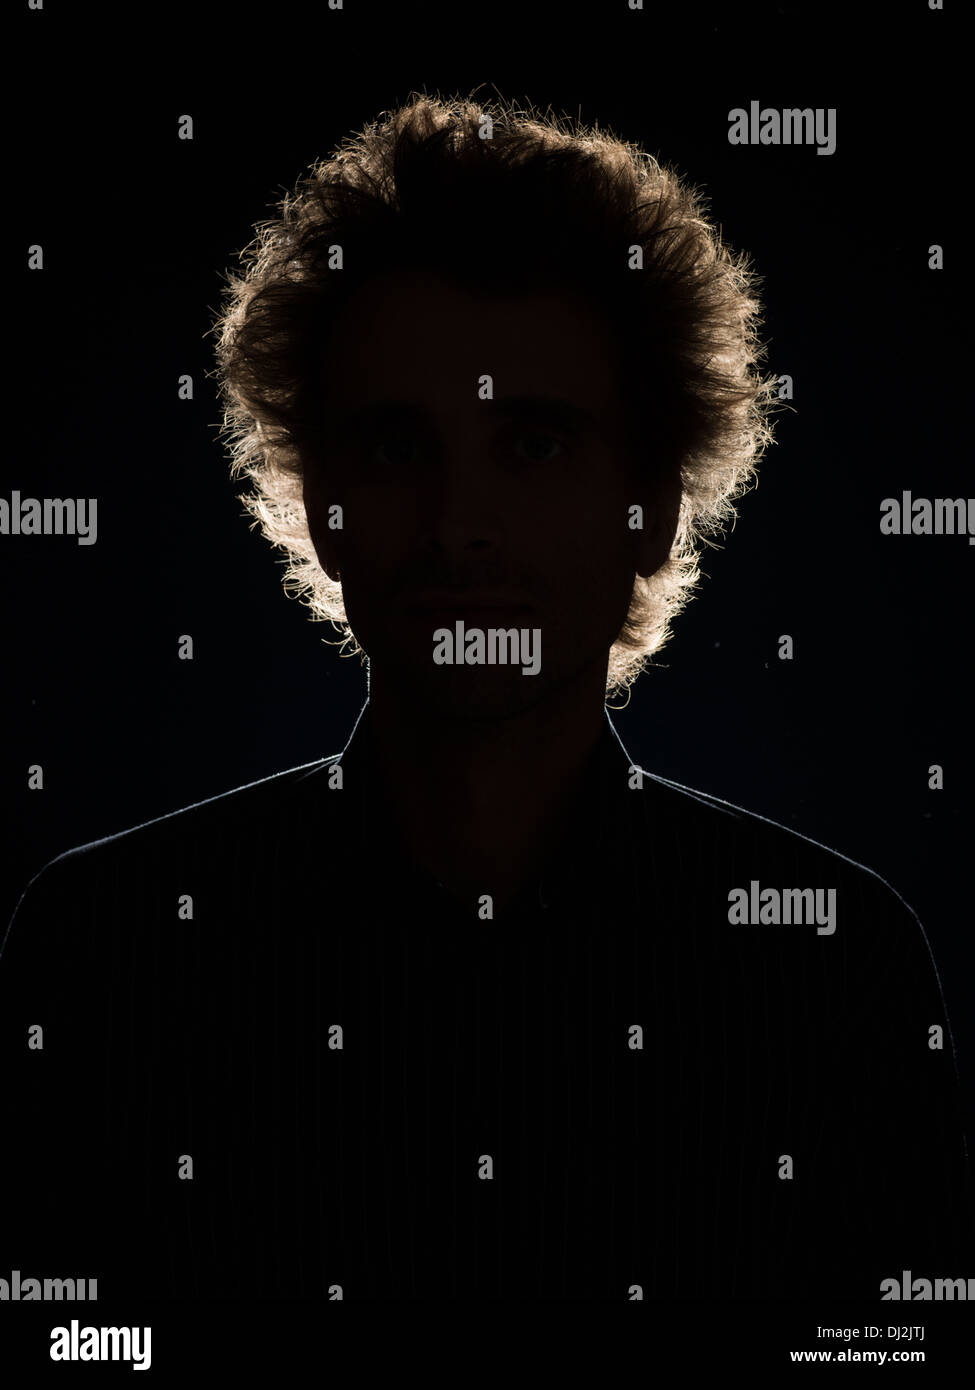 front view of man in shadow with back lighting on black background - Stock Image